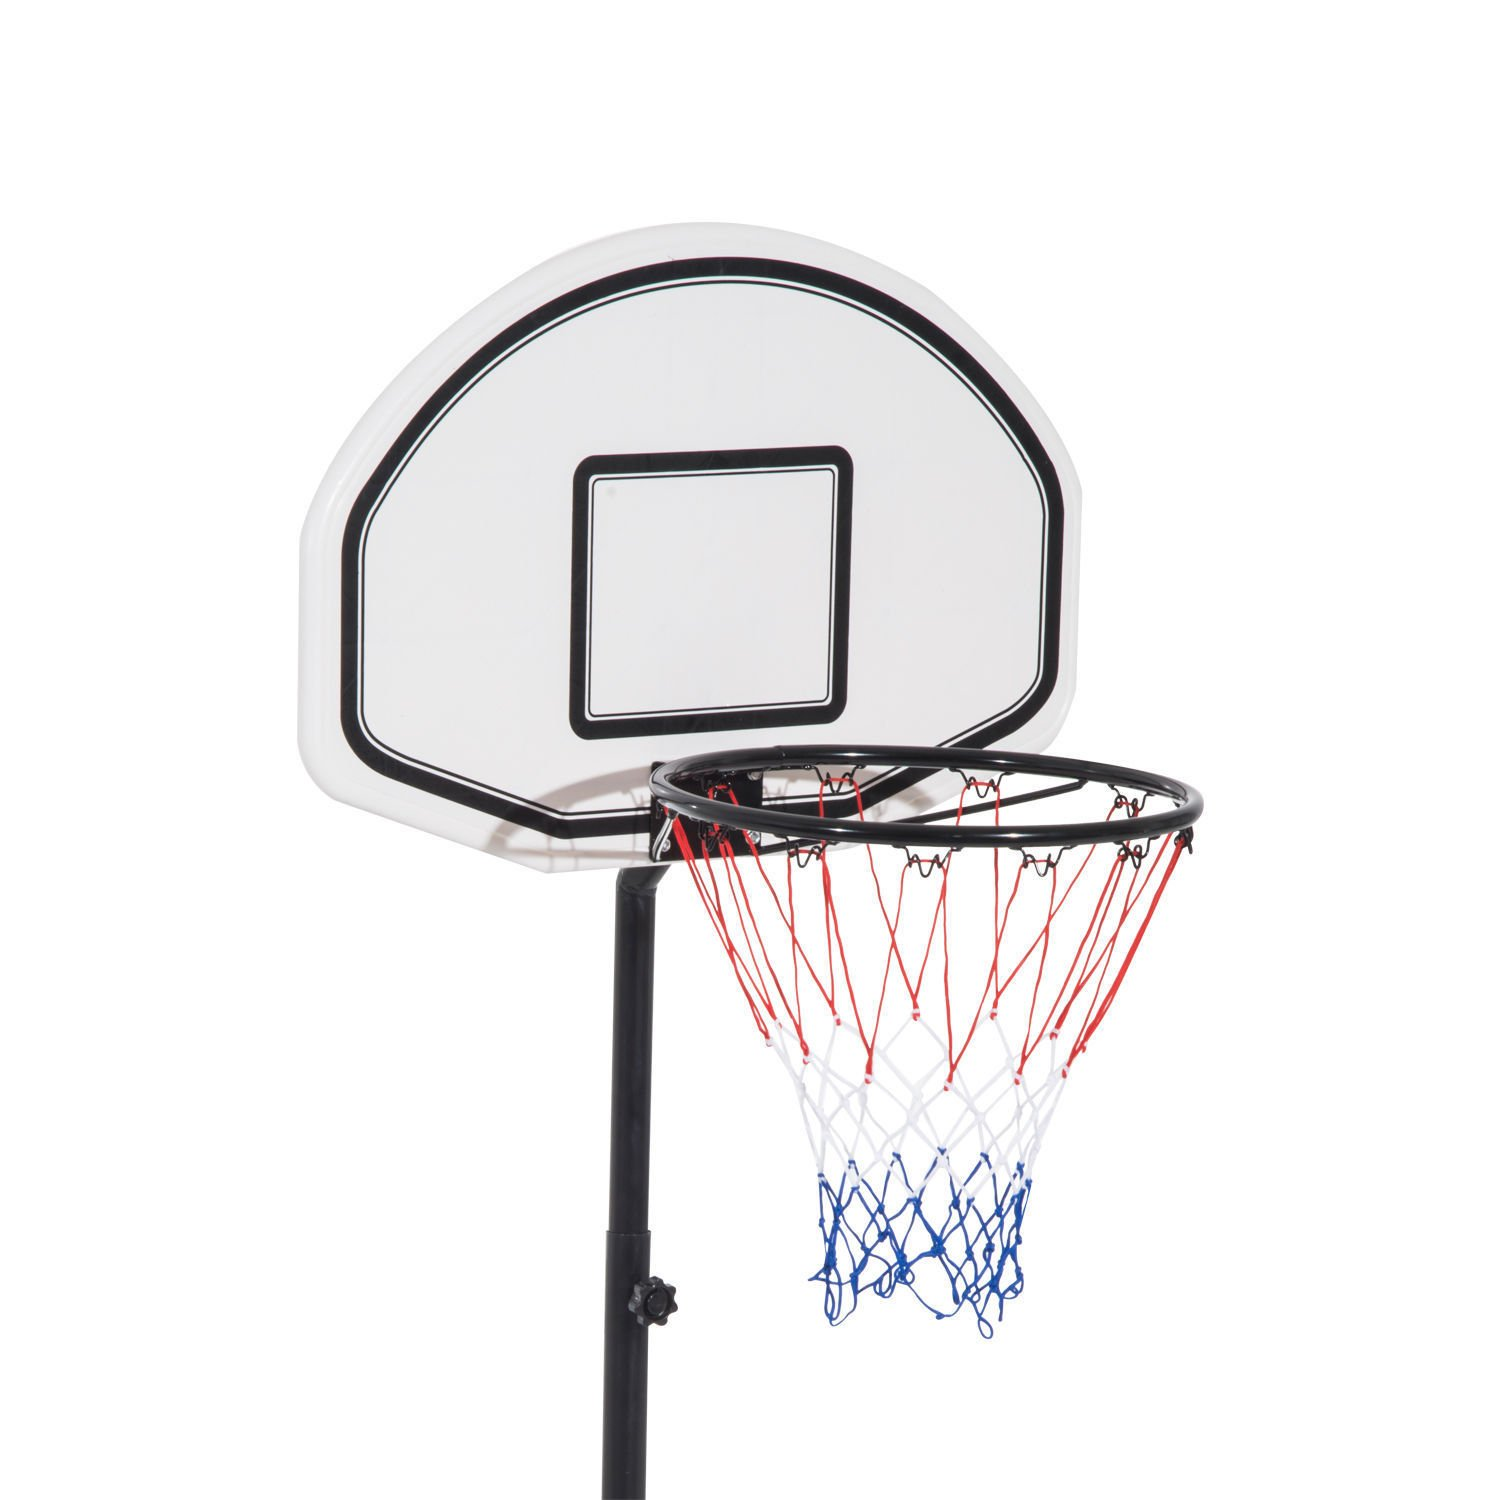 Poolside Basketball Hoop System Pool Water Sport Game Play Outdoor Adjustable by SpiritOne (Image #6)